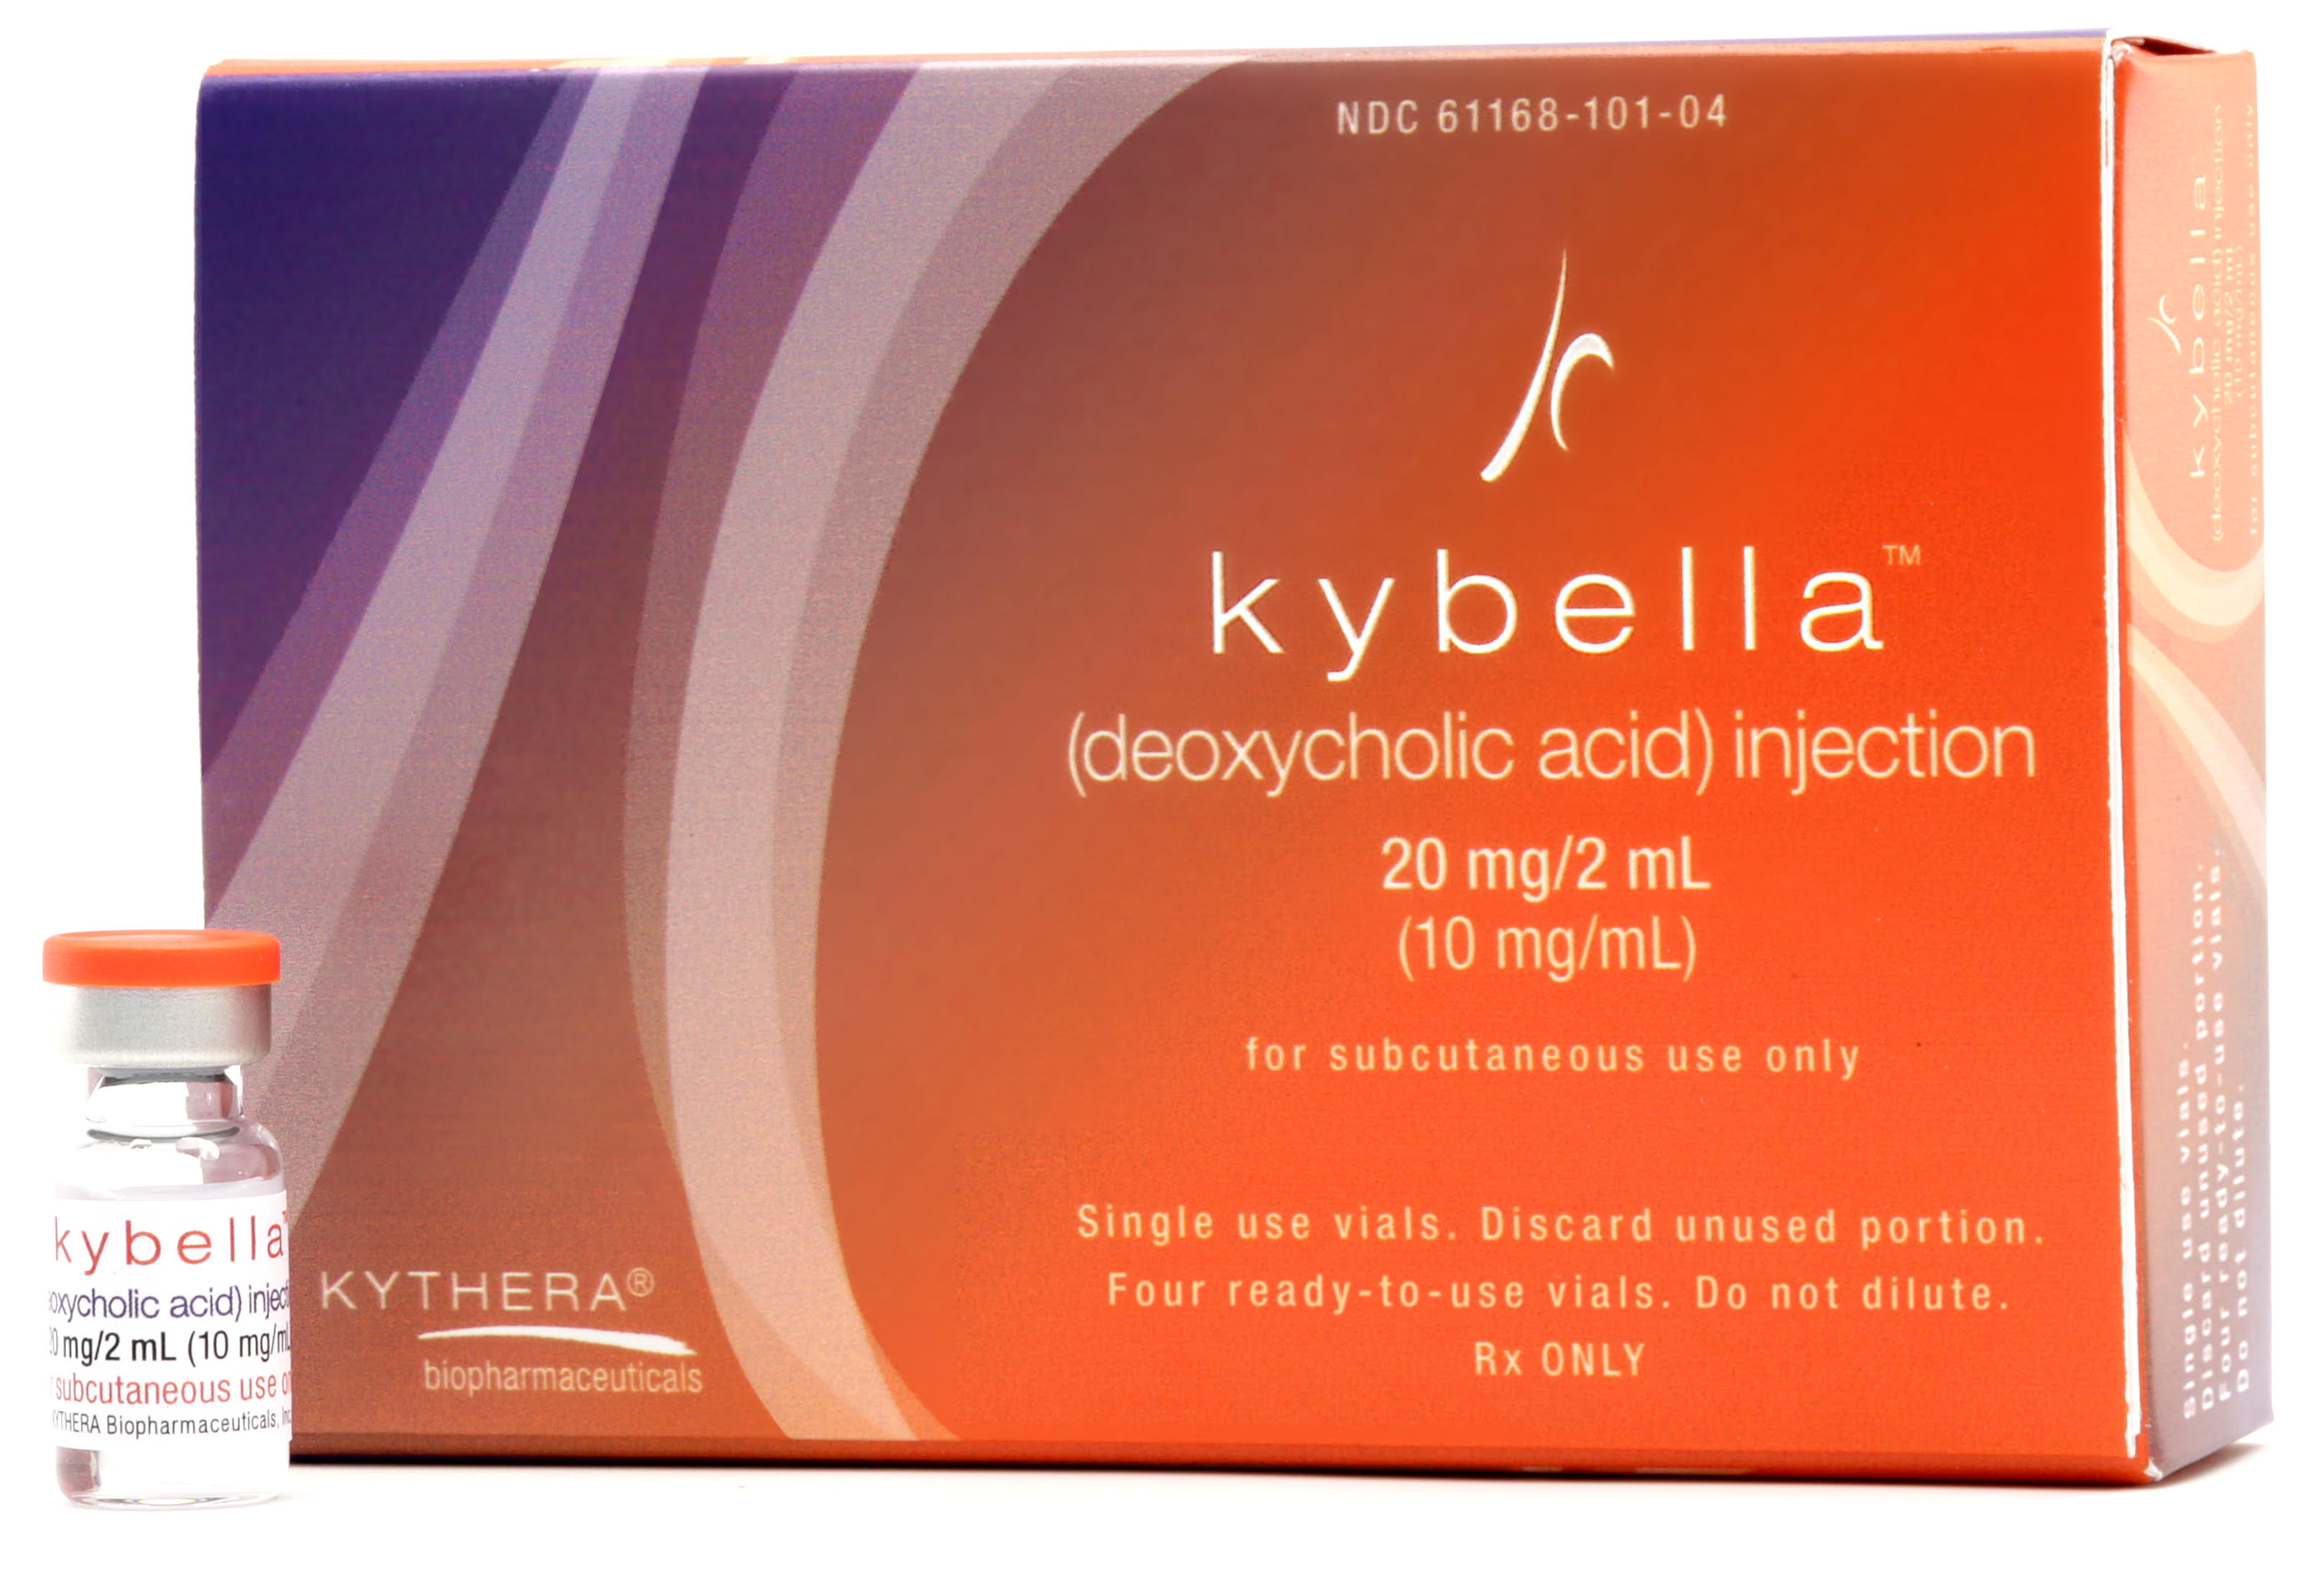 kybella product cropped